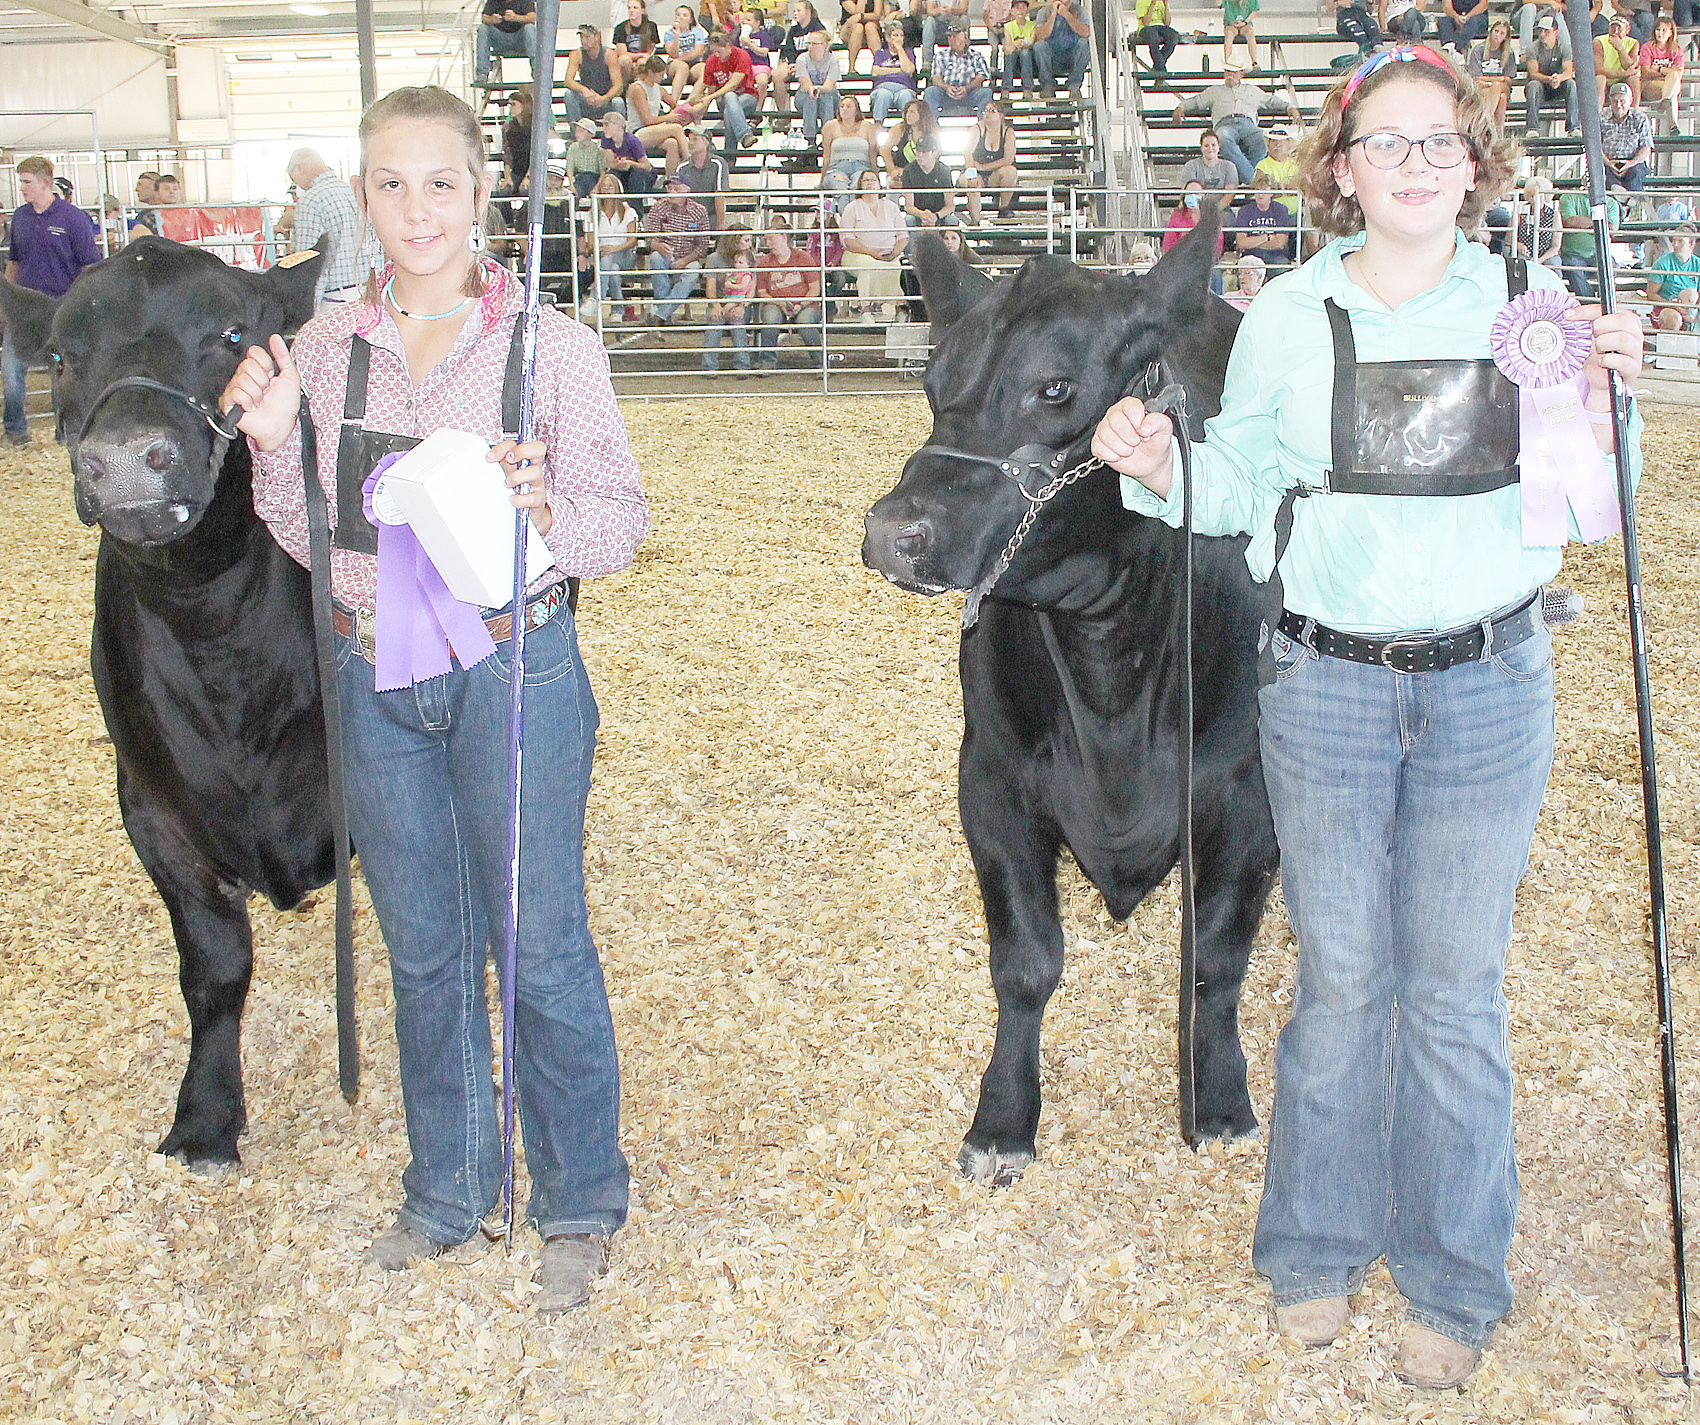 In intermediate beef showmanship, Savannah Cattrell (left) of the Soldier Boosters was named champion while Christan Kucan (right) of the Lucky Stars was named reserve champion.